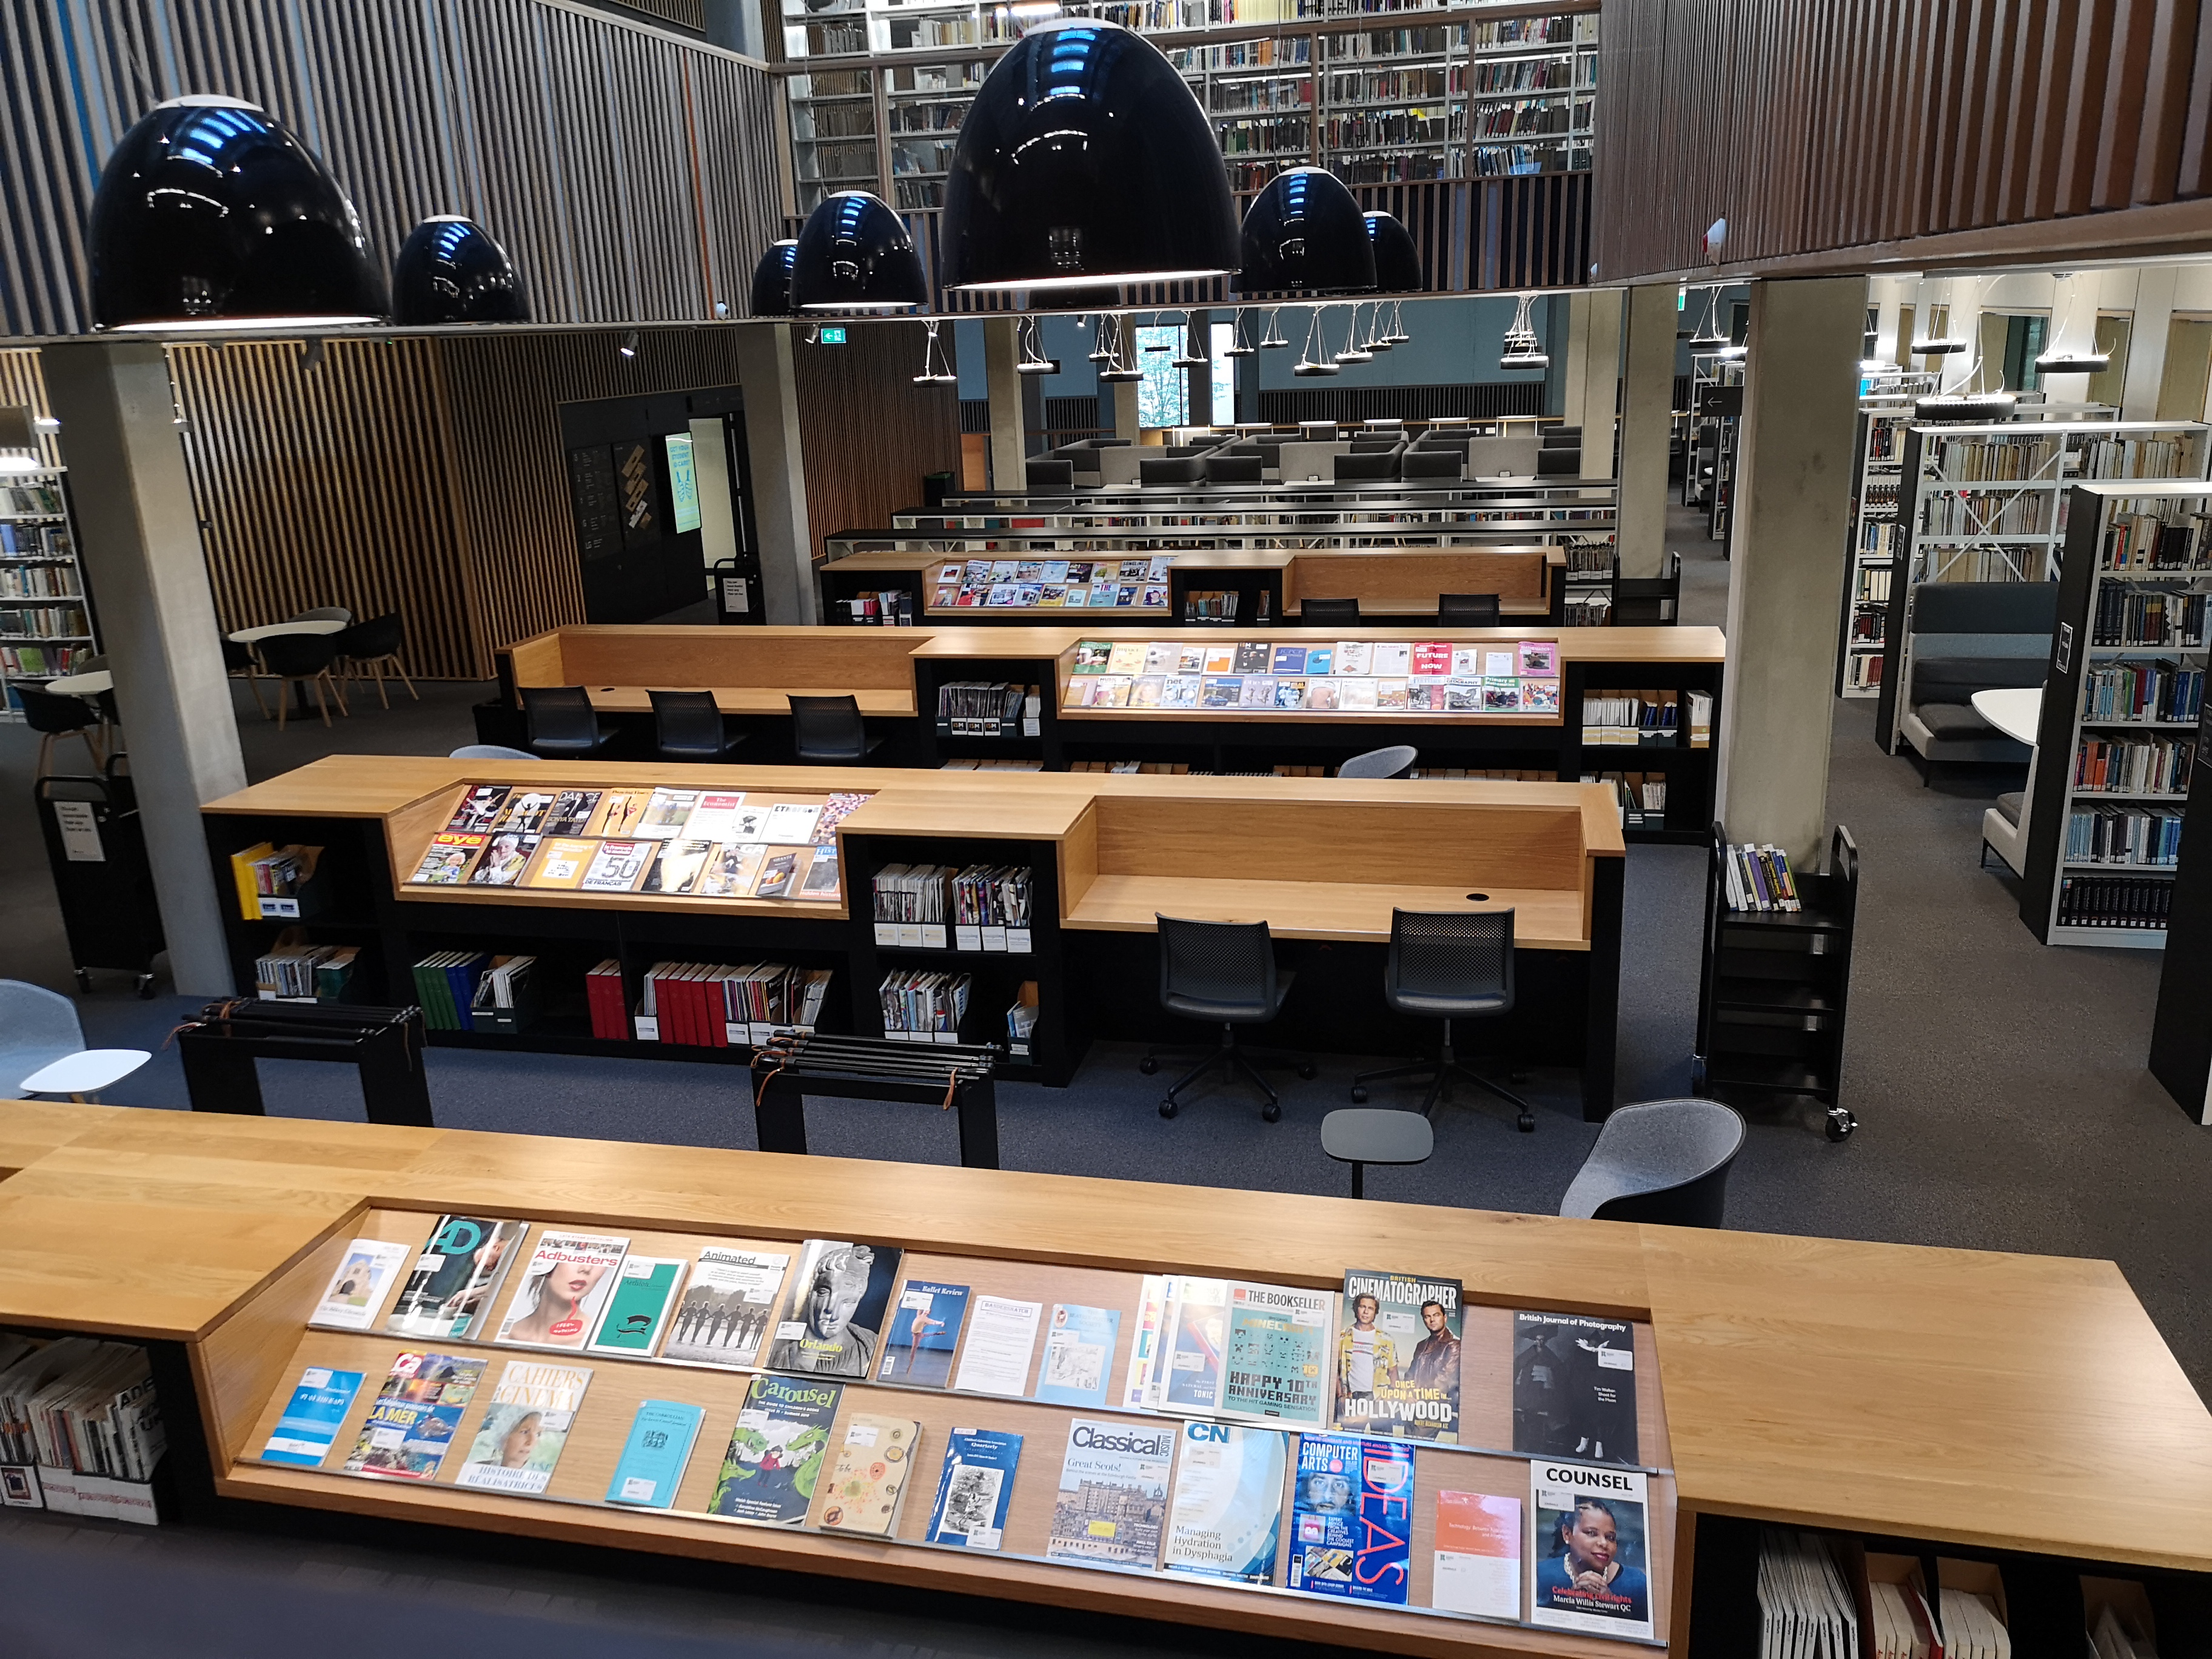 The ground floor from the central staircase - various study desks and bookshelves can be seen, as well as the journal area